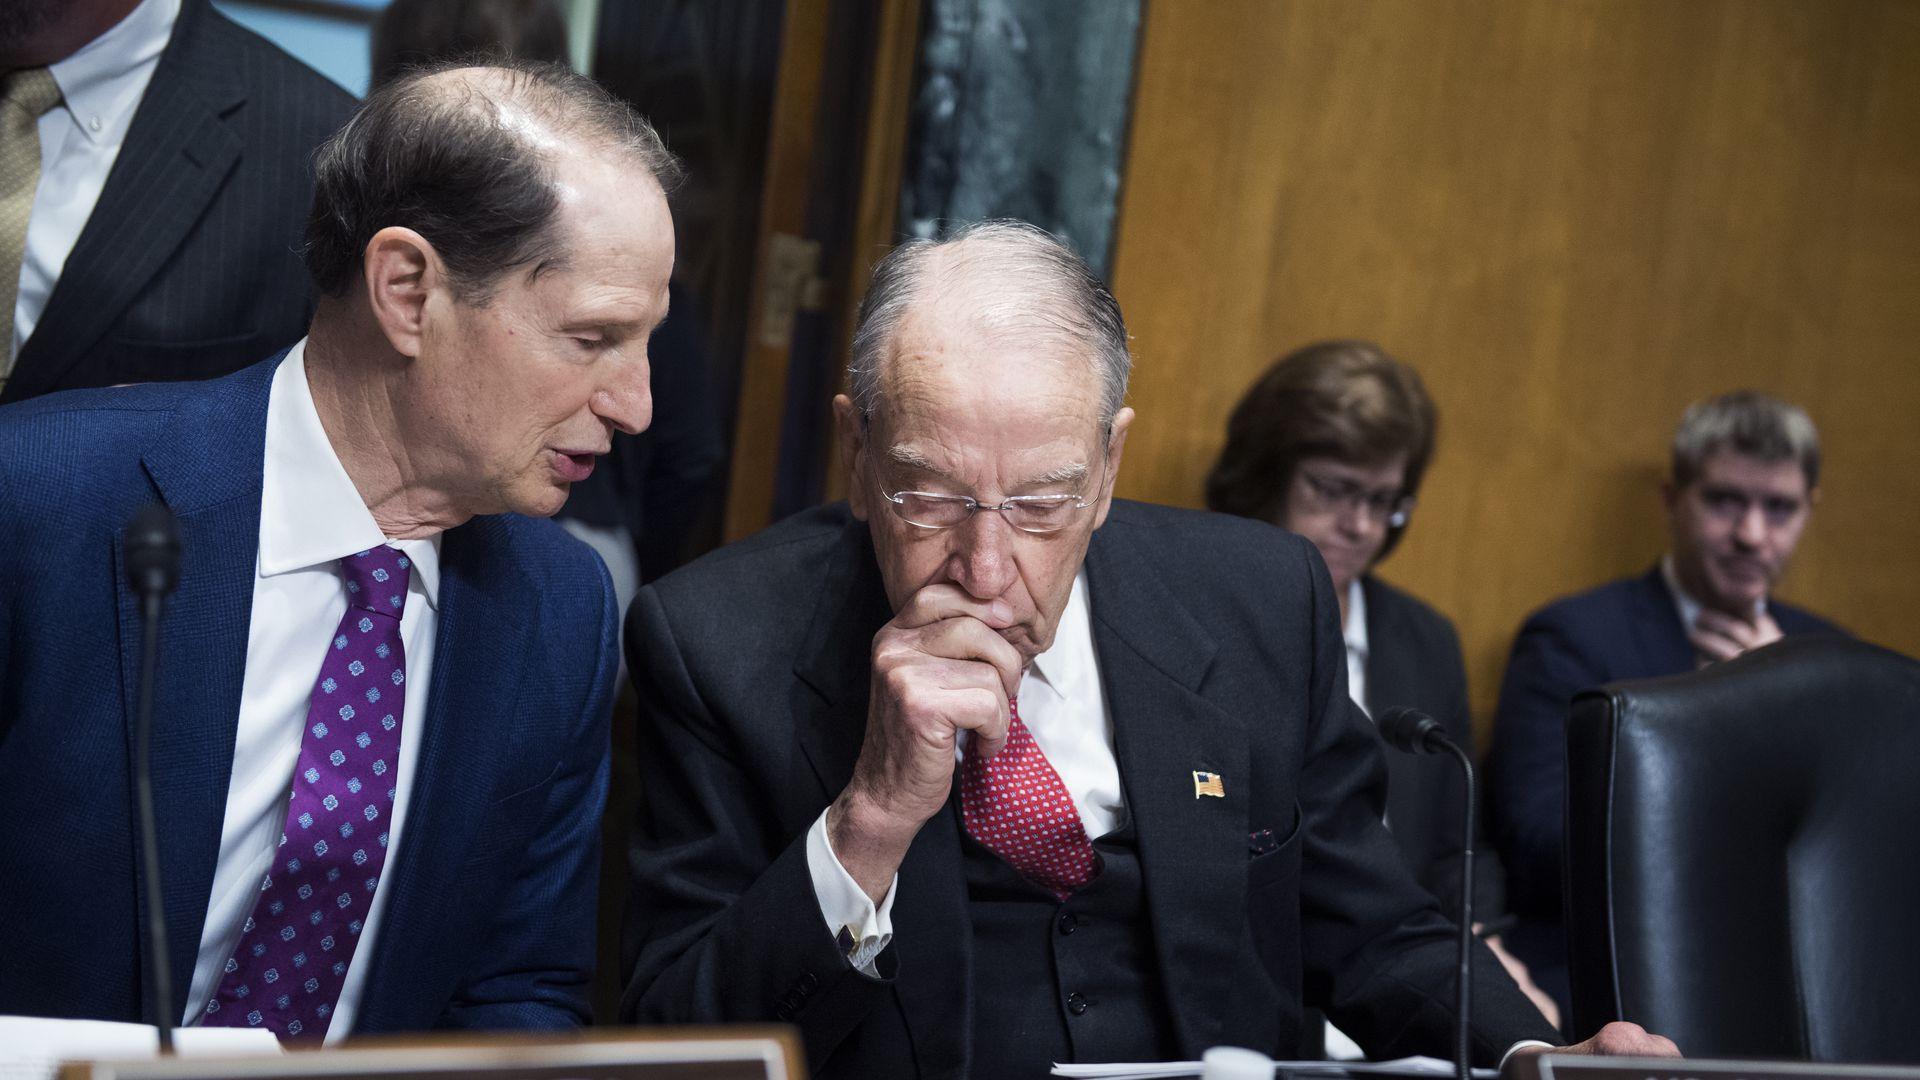 Sens. Ron Wyden and Chuck Grassley sit and talk at a hearing.